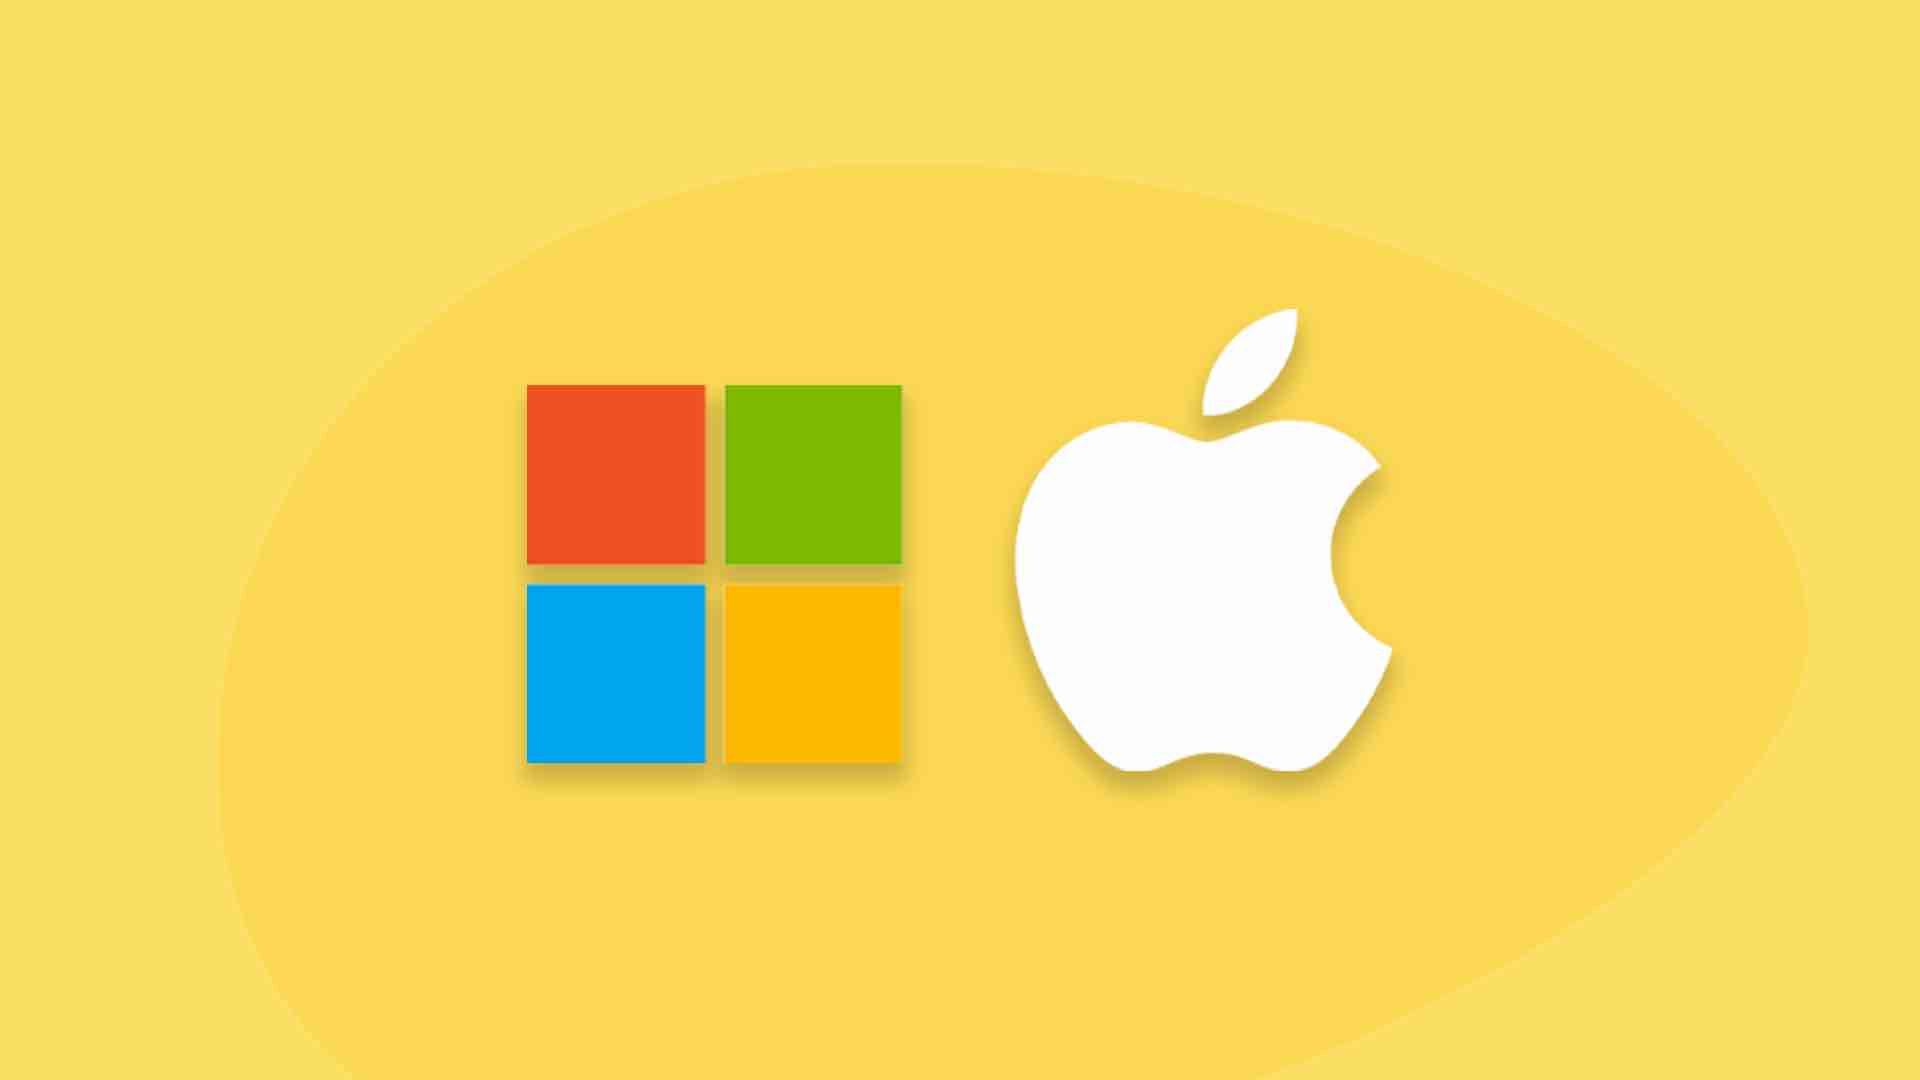 how microsoft saved apple - image contains microsoft and apple logos over a yellow background